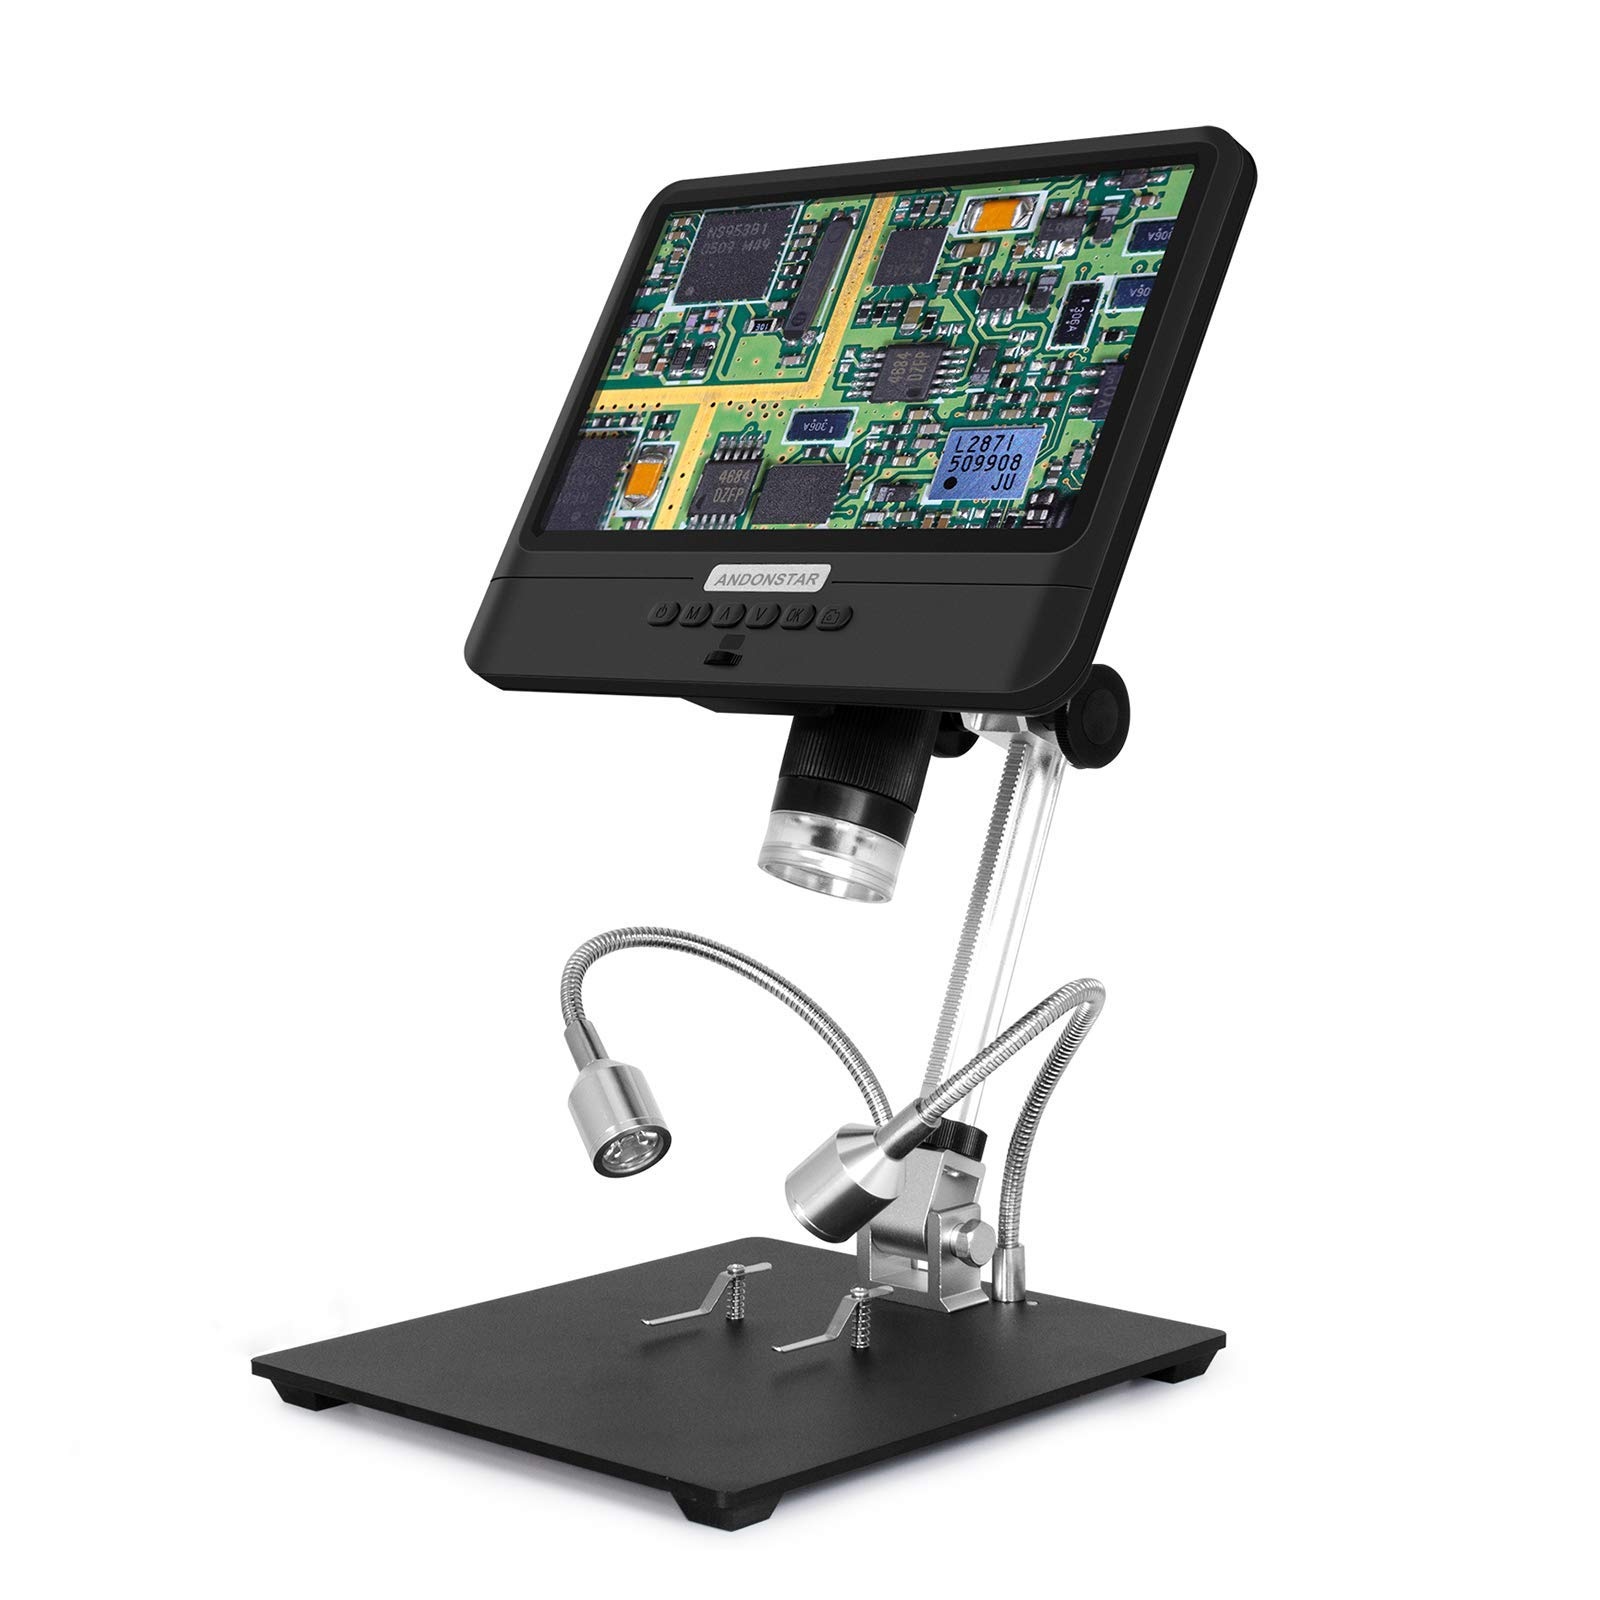 Andonstar AD208 USB Digital Microscope with Adjustable 8.5-inch LCD Display HD 1080P Image Video Camera for Coin Collection, PCB Inspection, SMT/SMD Soldering and Phone Repair